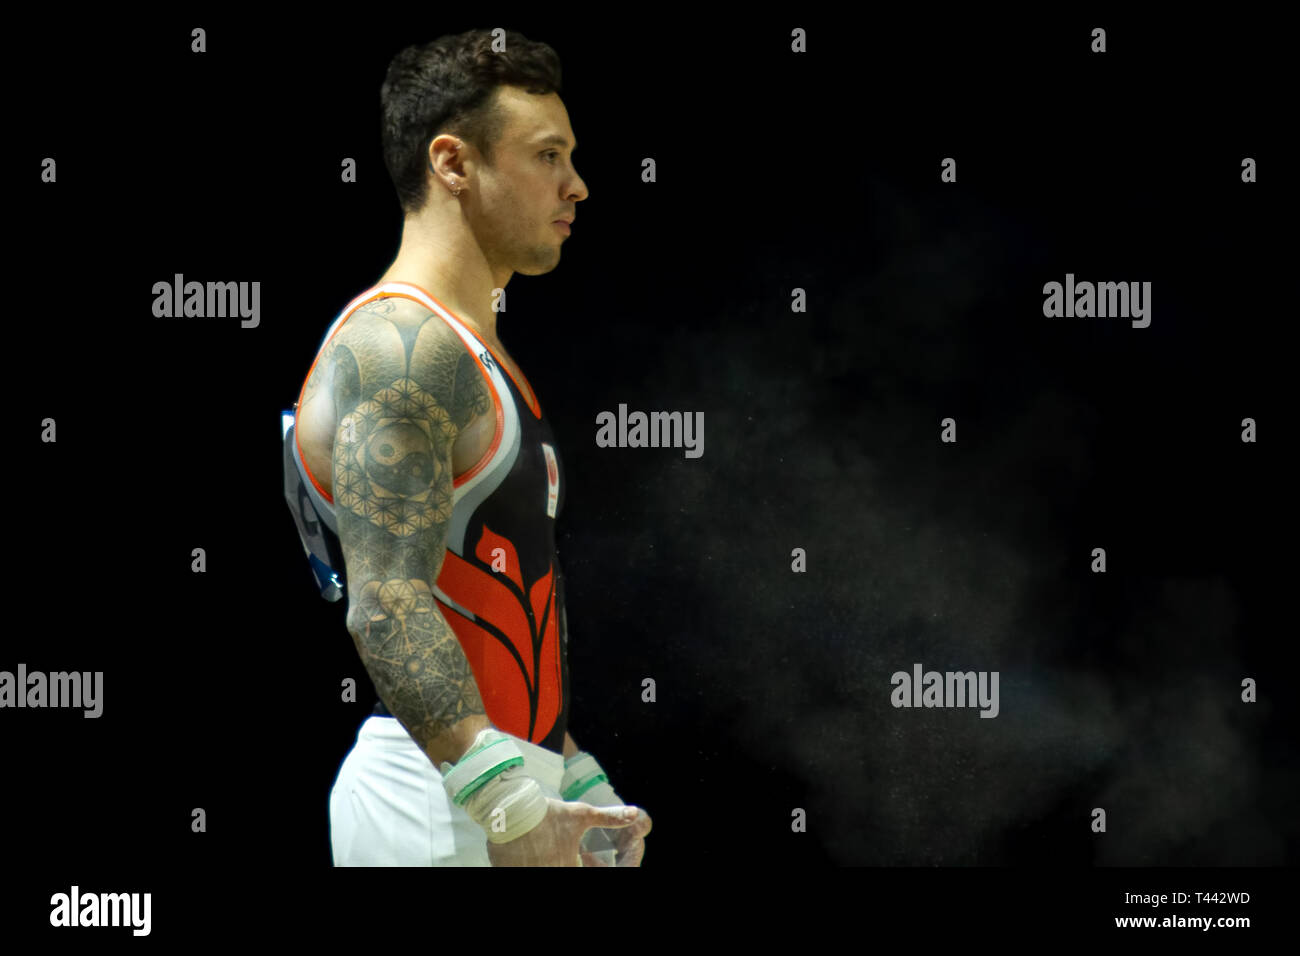 Birmingham, England, UK. 23 March, 2019. The Netherlands' Bart Deurloo before performing in the men's horizontal bar competition, during the 2019 Gymn - Stock Image